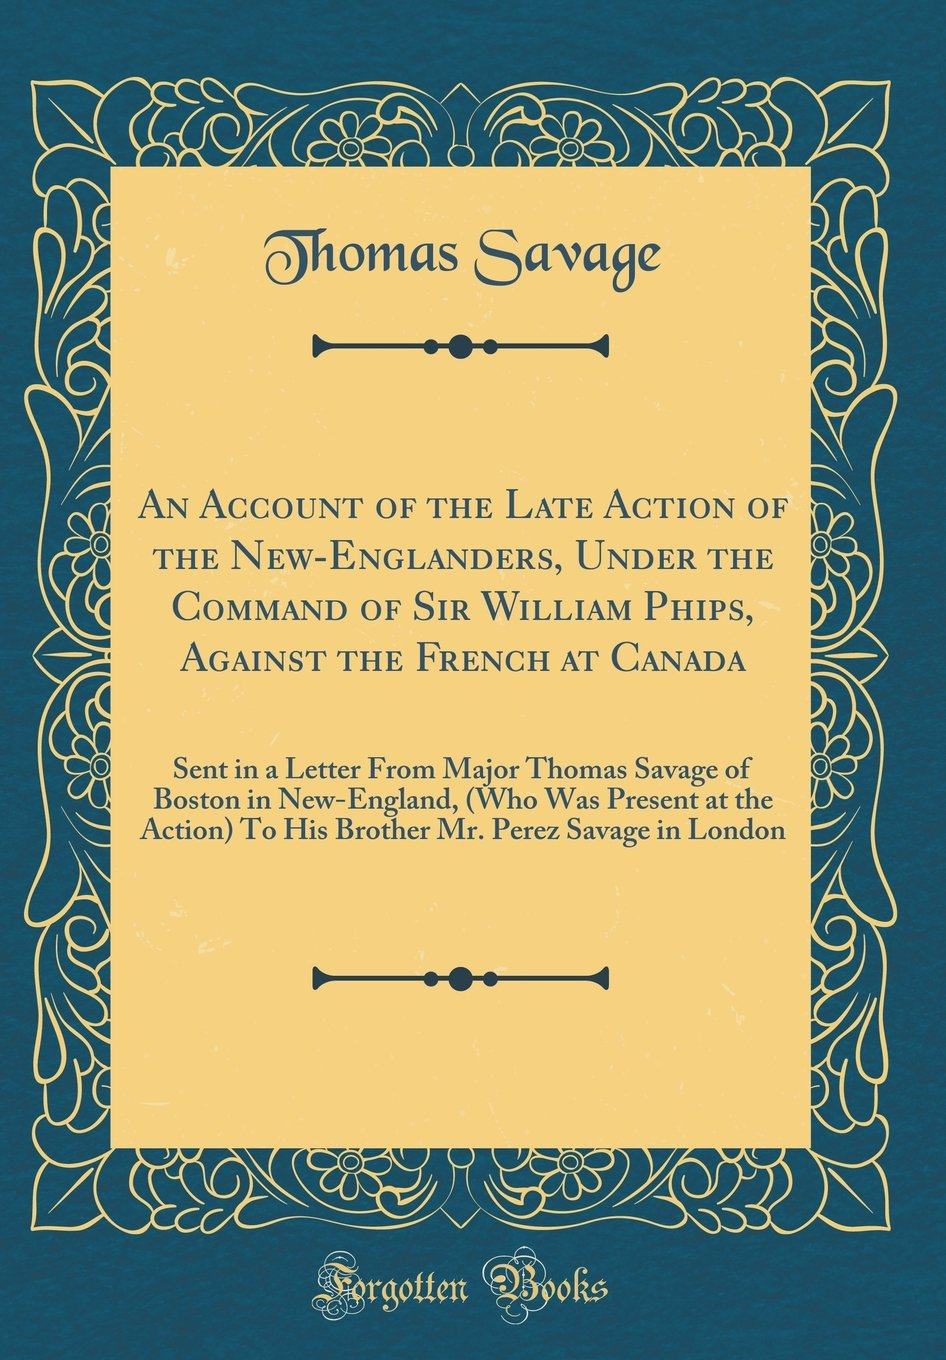 Read Online An Account of the Late Action of the New-Englanders, Under the Command of Sir William Phips, Against the French at Canada: Sent in a Letter from Major ... the Action) to His Brother Mr. Perez Savage ebook